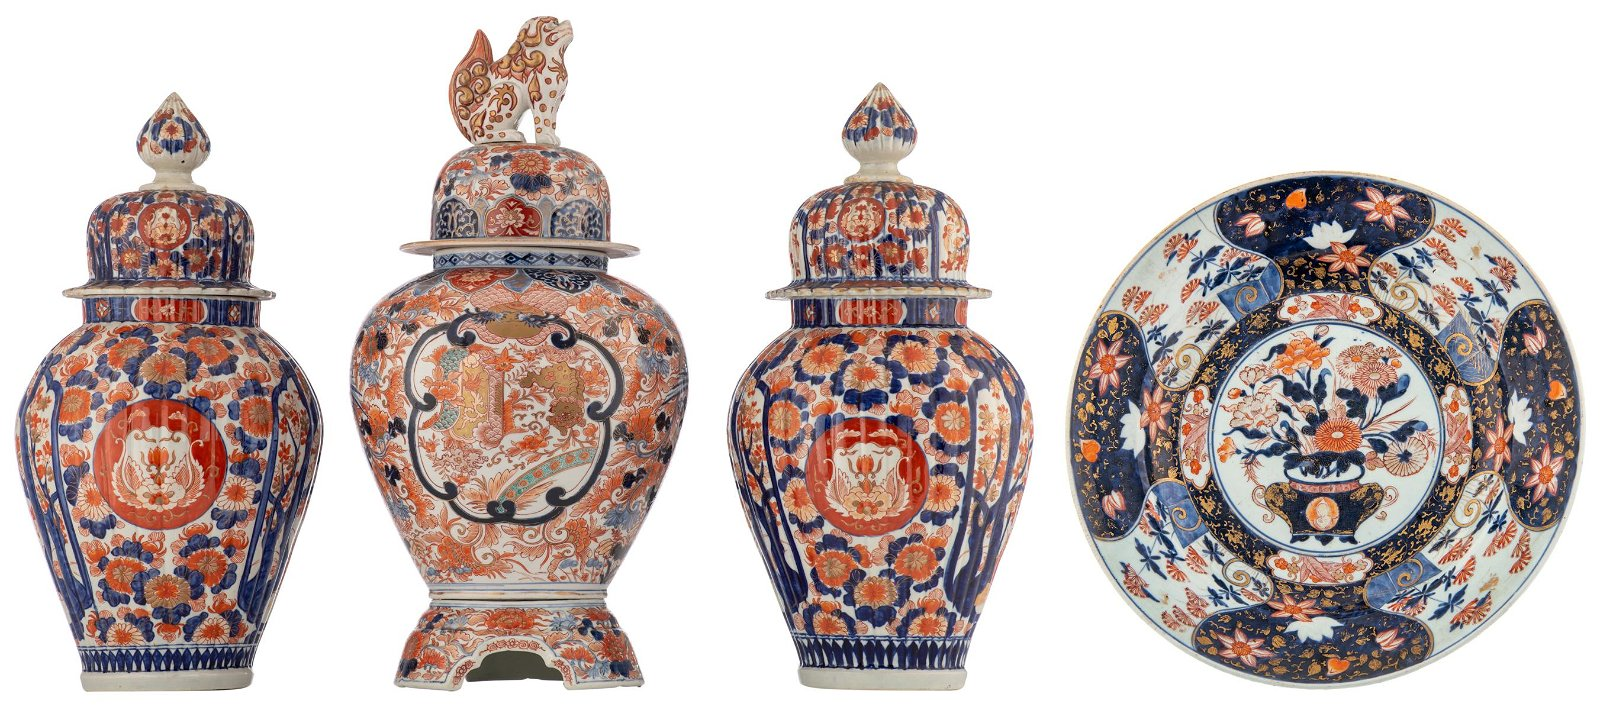 An Arita Imari charger, the well decorated with a